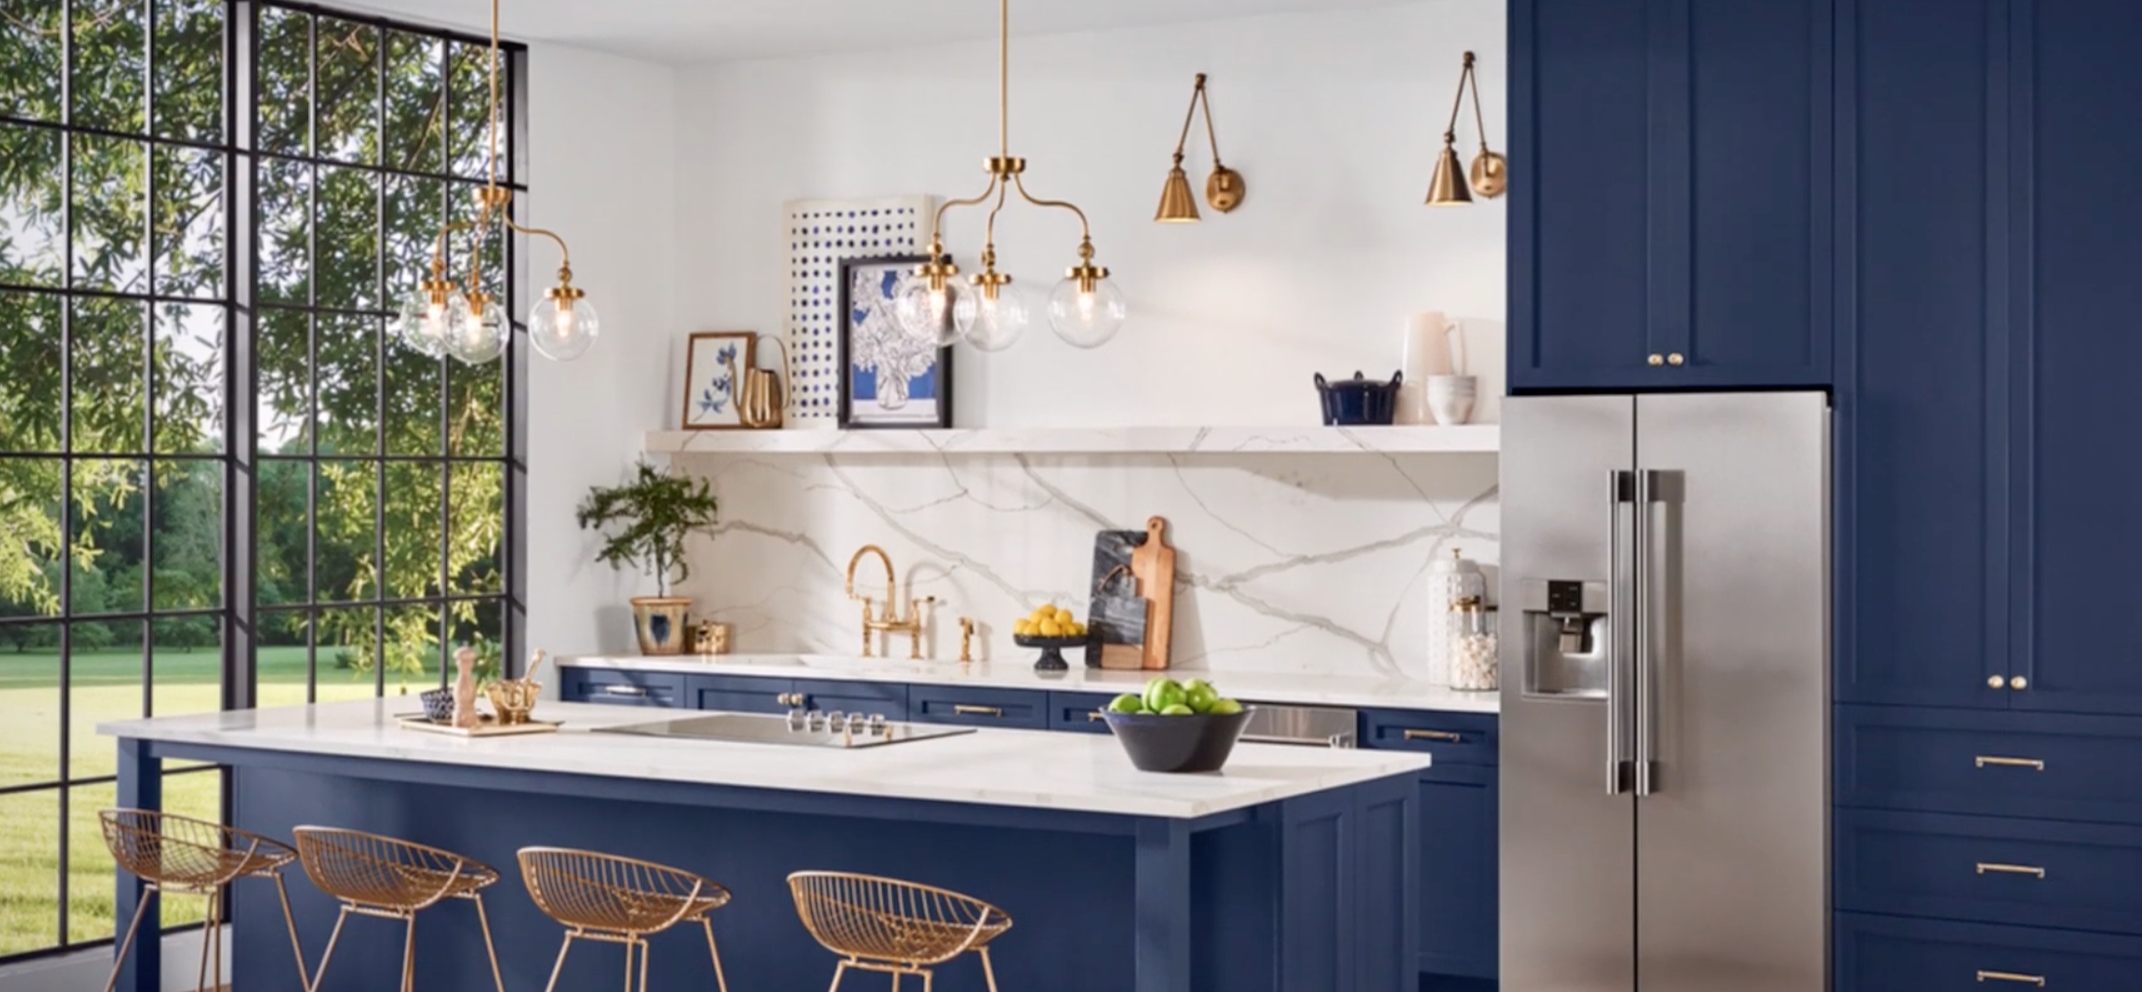 Here, Sherwin Williams Naval is paired with white marble and natural brass accents alongside stainless steel appliances and hardware. The look is both rich and classic. Image via   Sherwin WIlliams